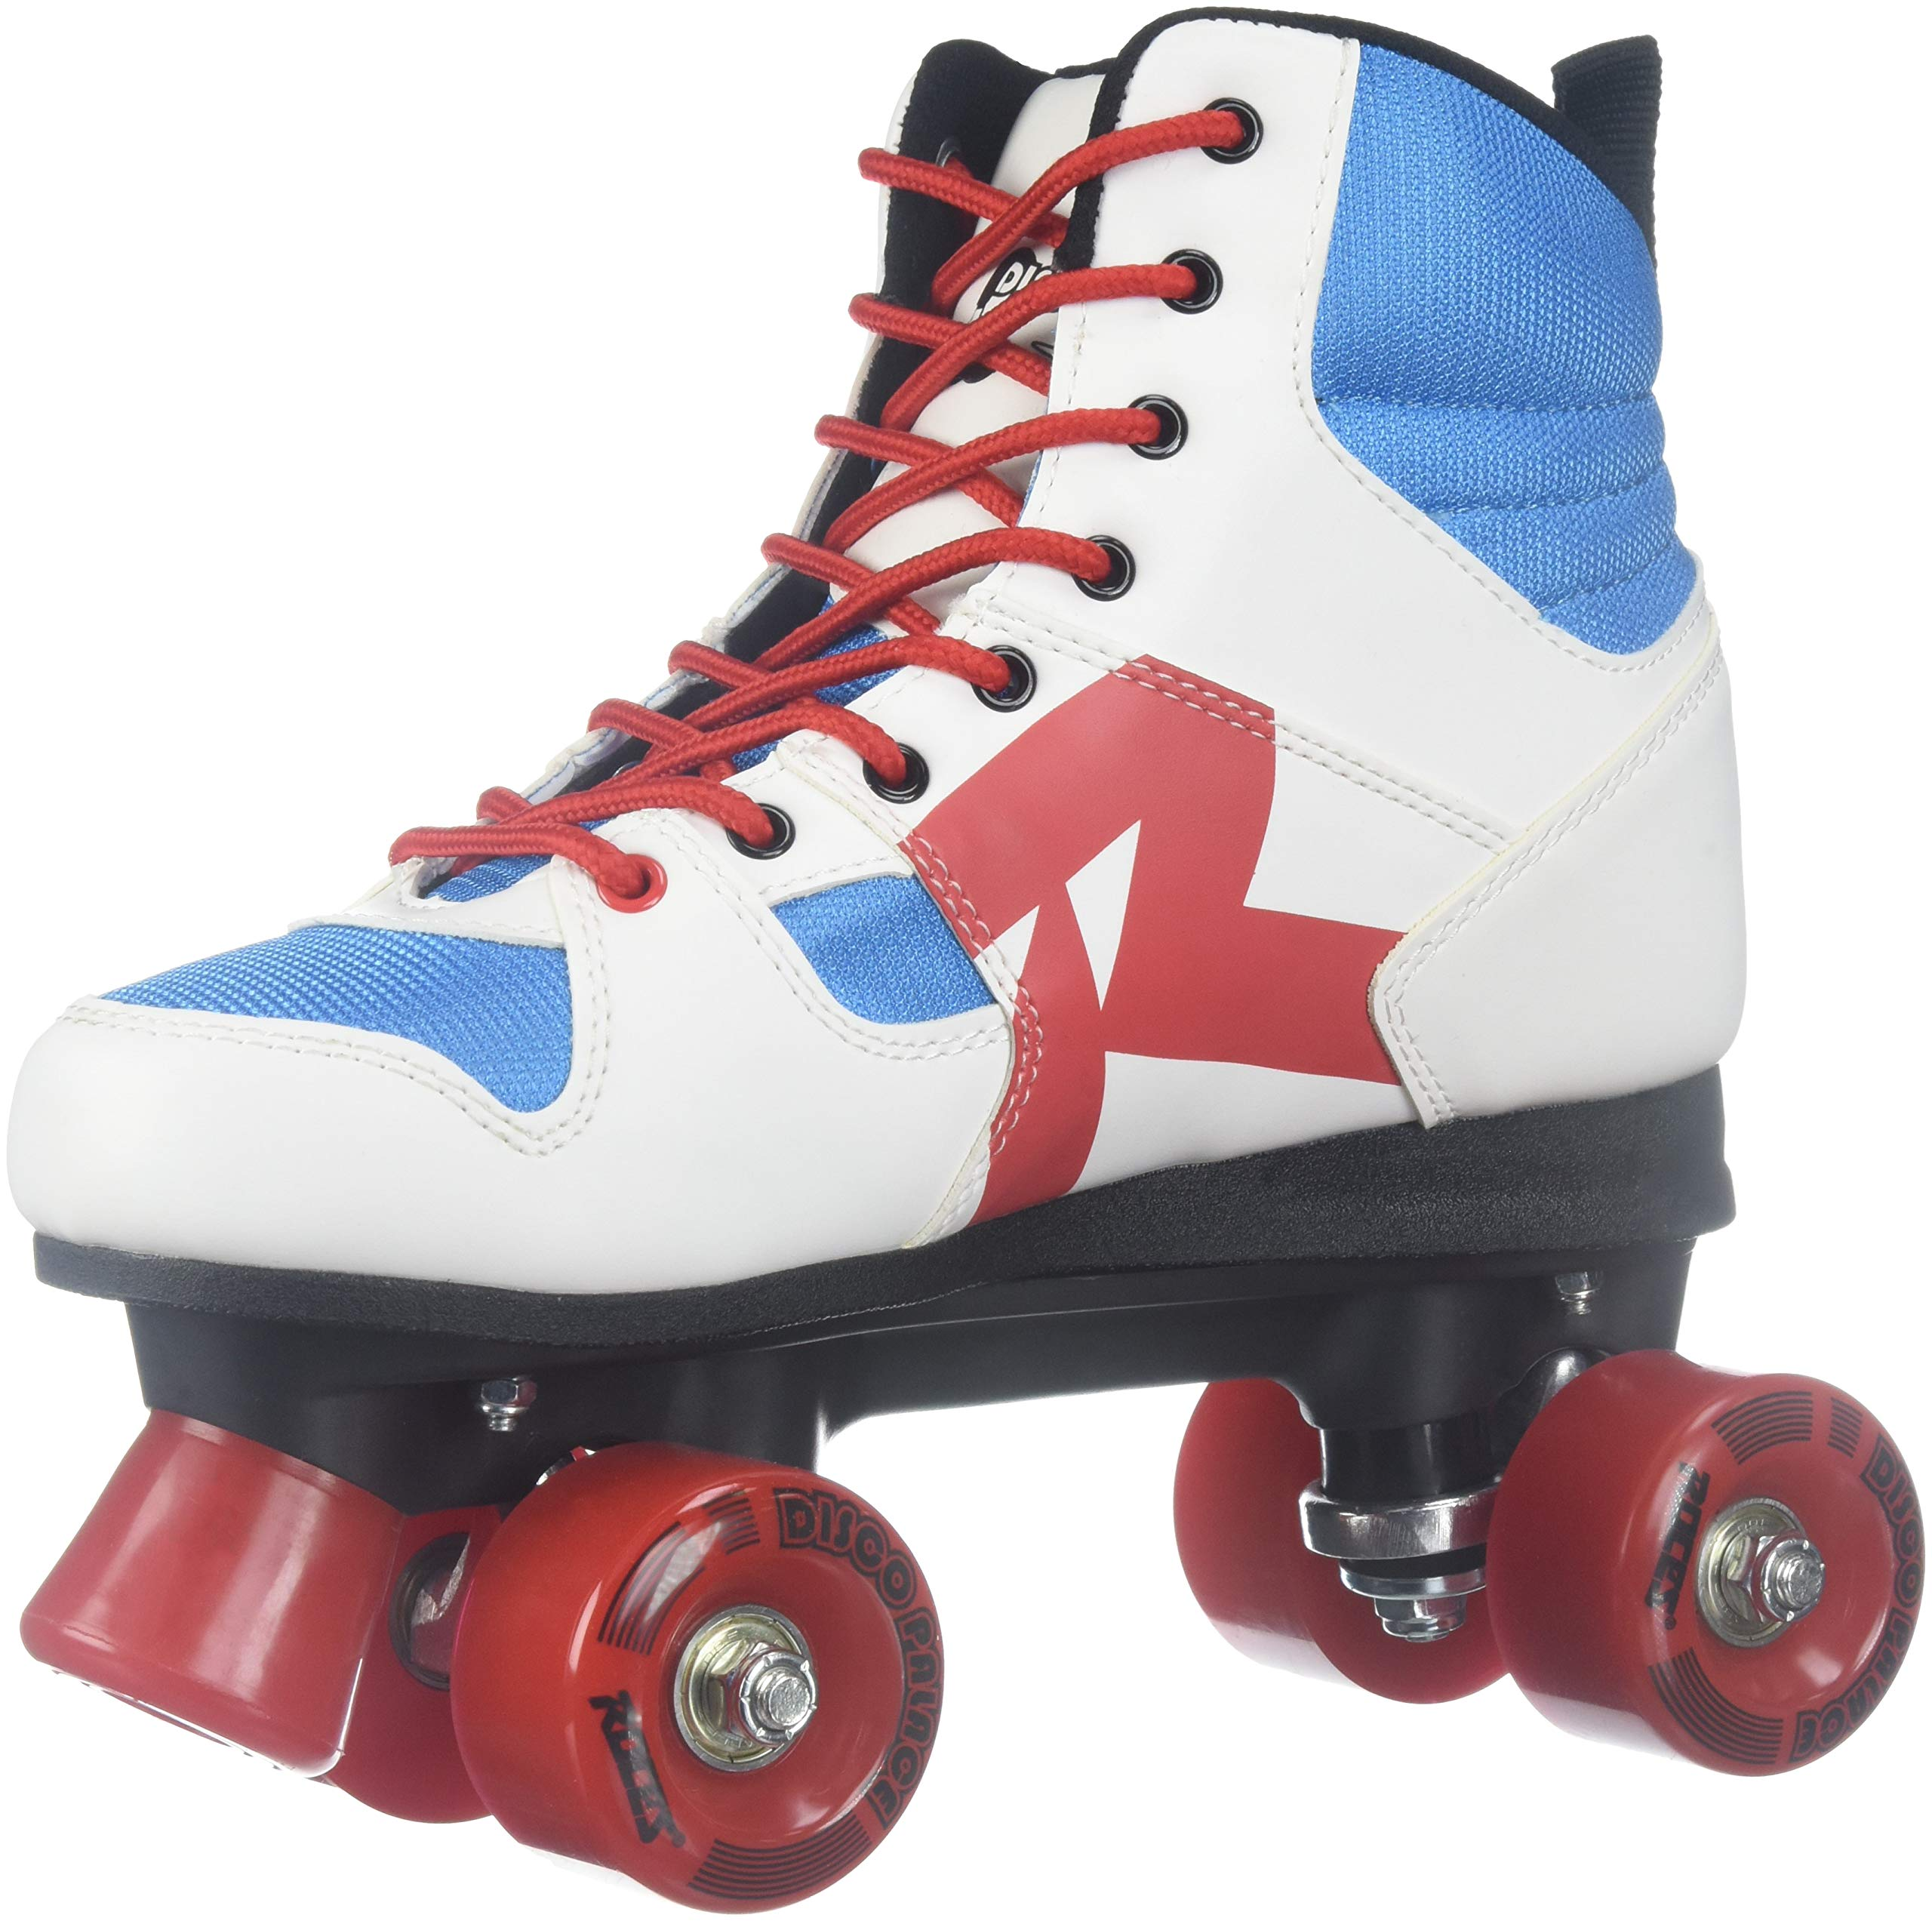 Roces 550039 Model Disco Palace Roller Skate, US 6M/8W, Red/White/Blue